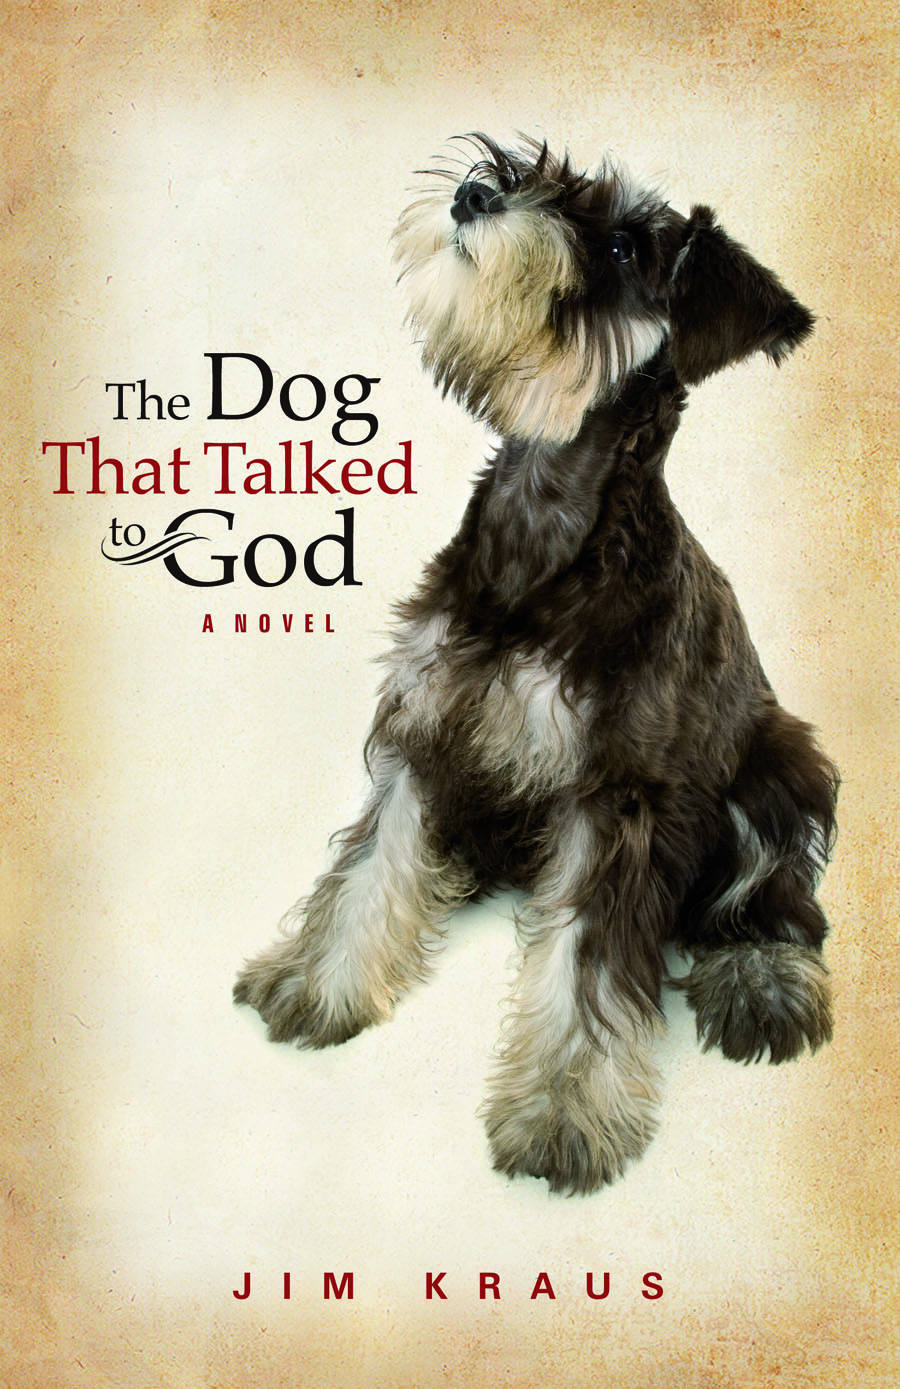 The Dog That Talked to God - Jim Kraus.jpg